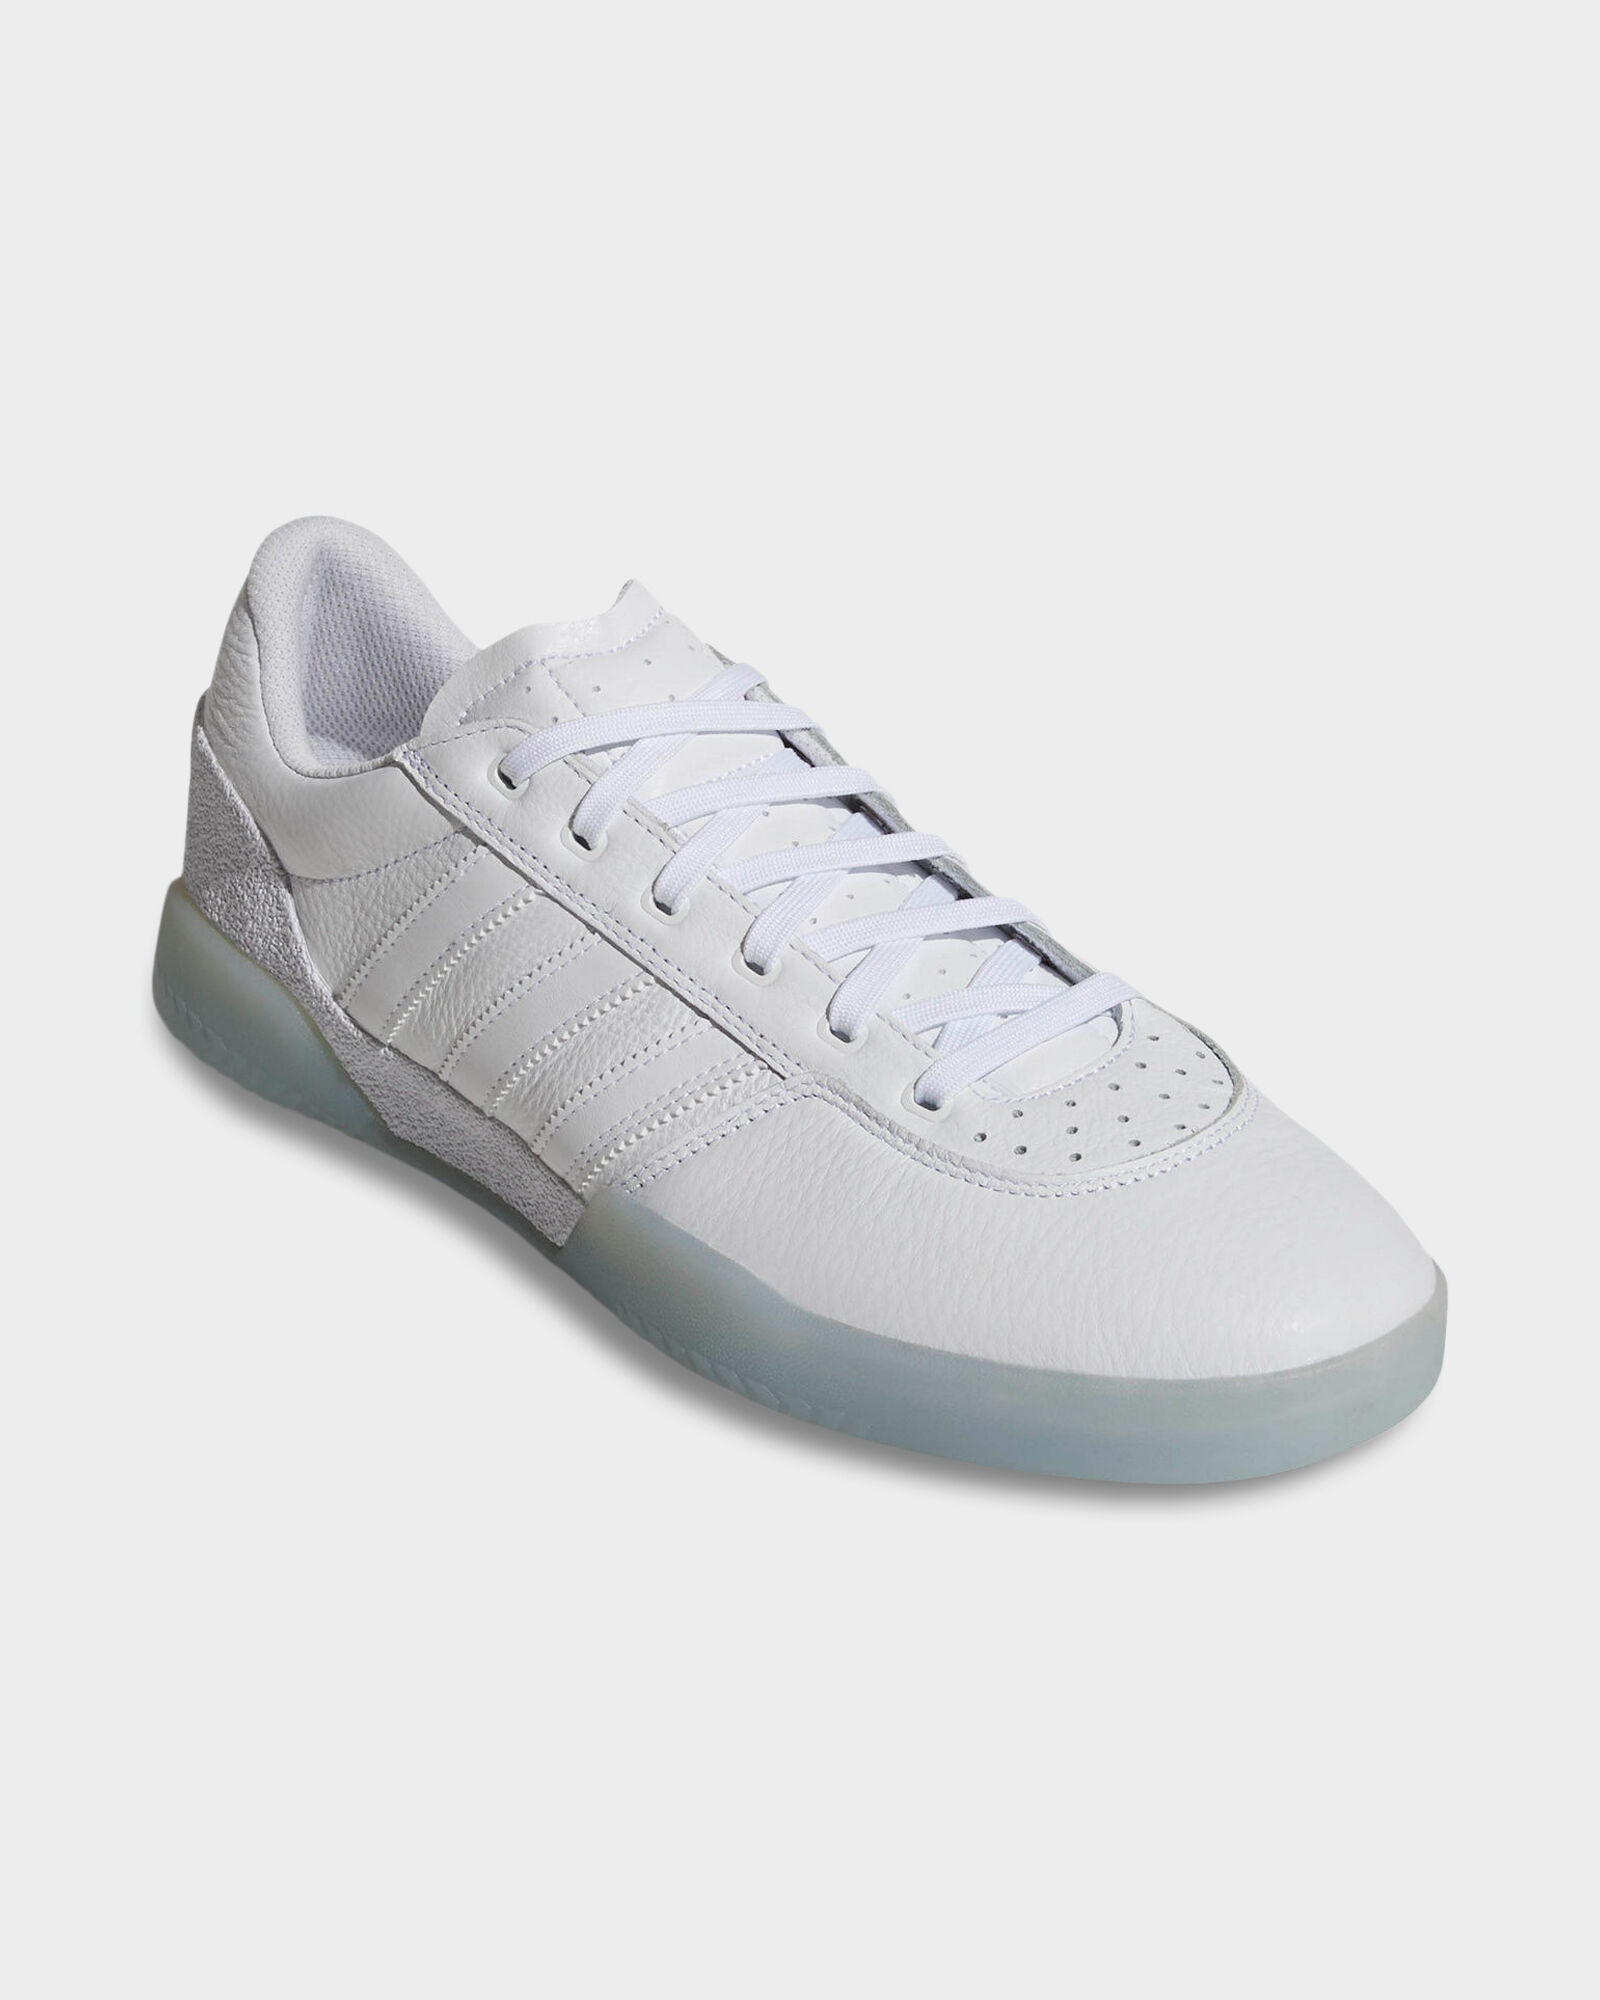 White ADIDAS CITY CUP WHITE LEATHER SHOE | Surf, Dive 'N' Ski